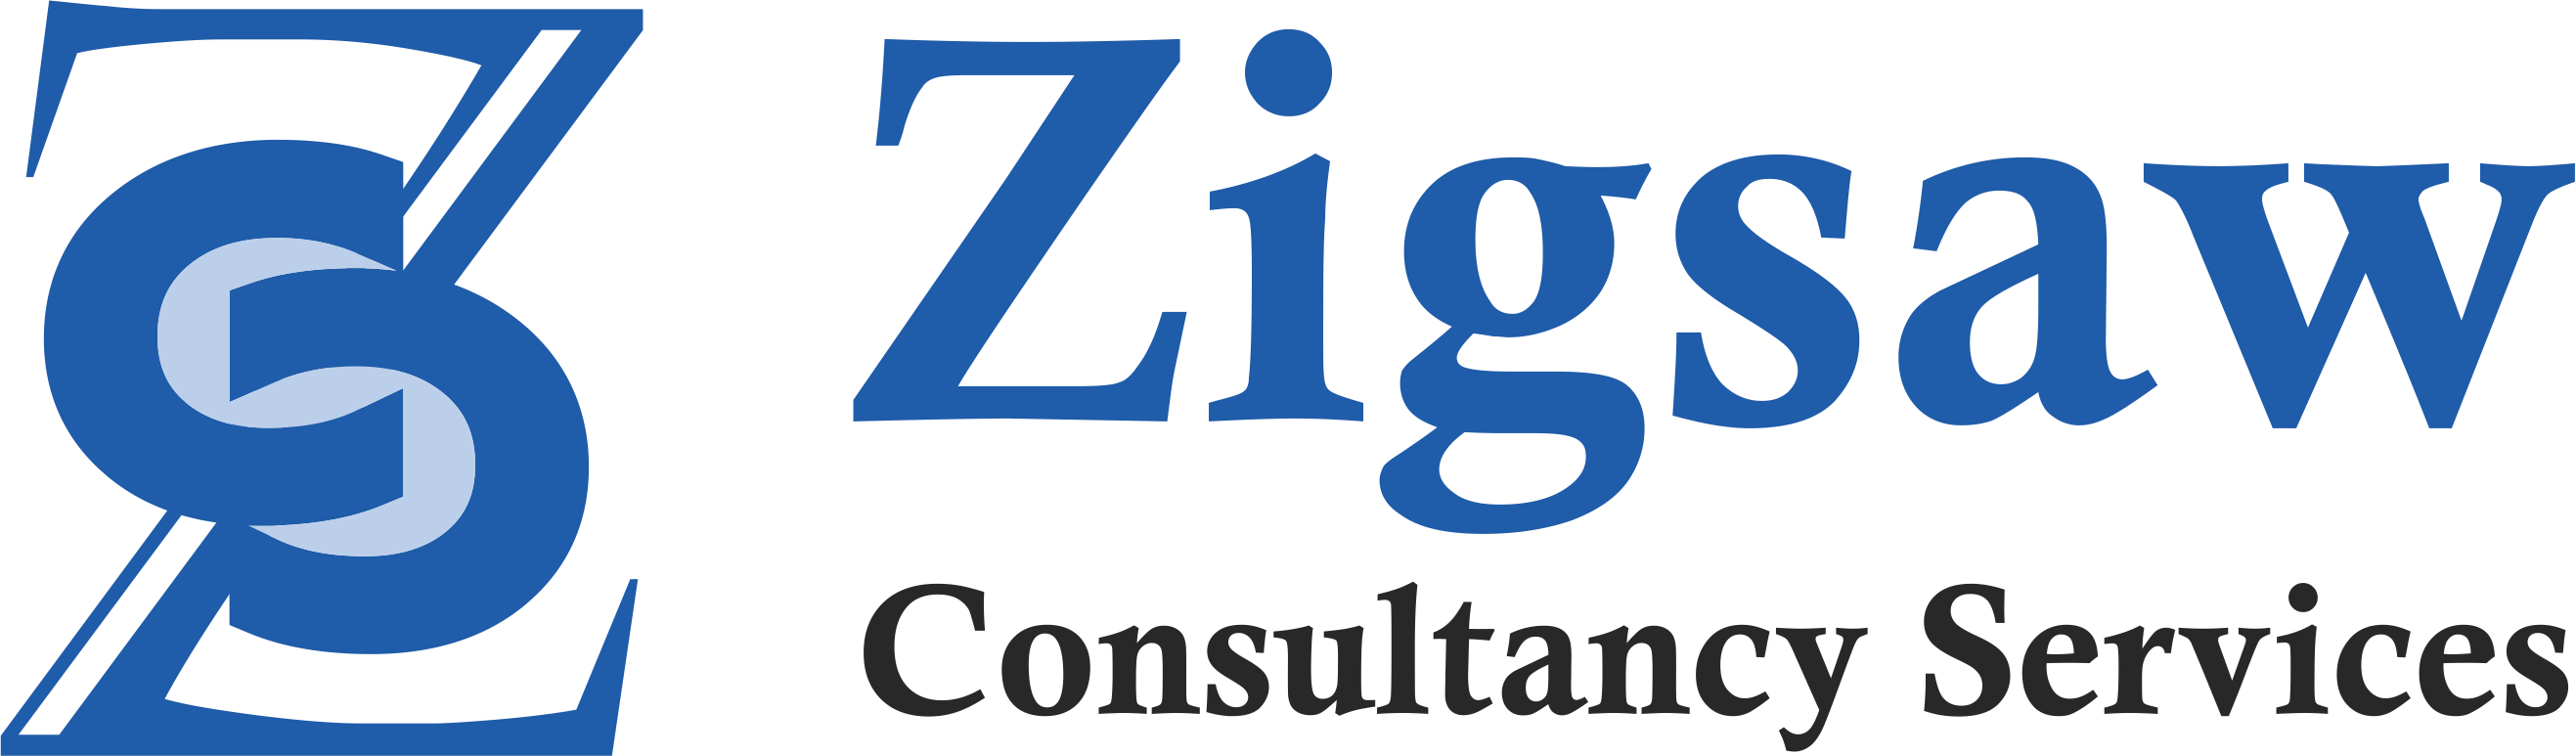 internship in Zigsaw Consultancy Services